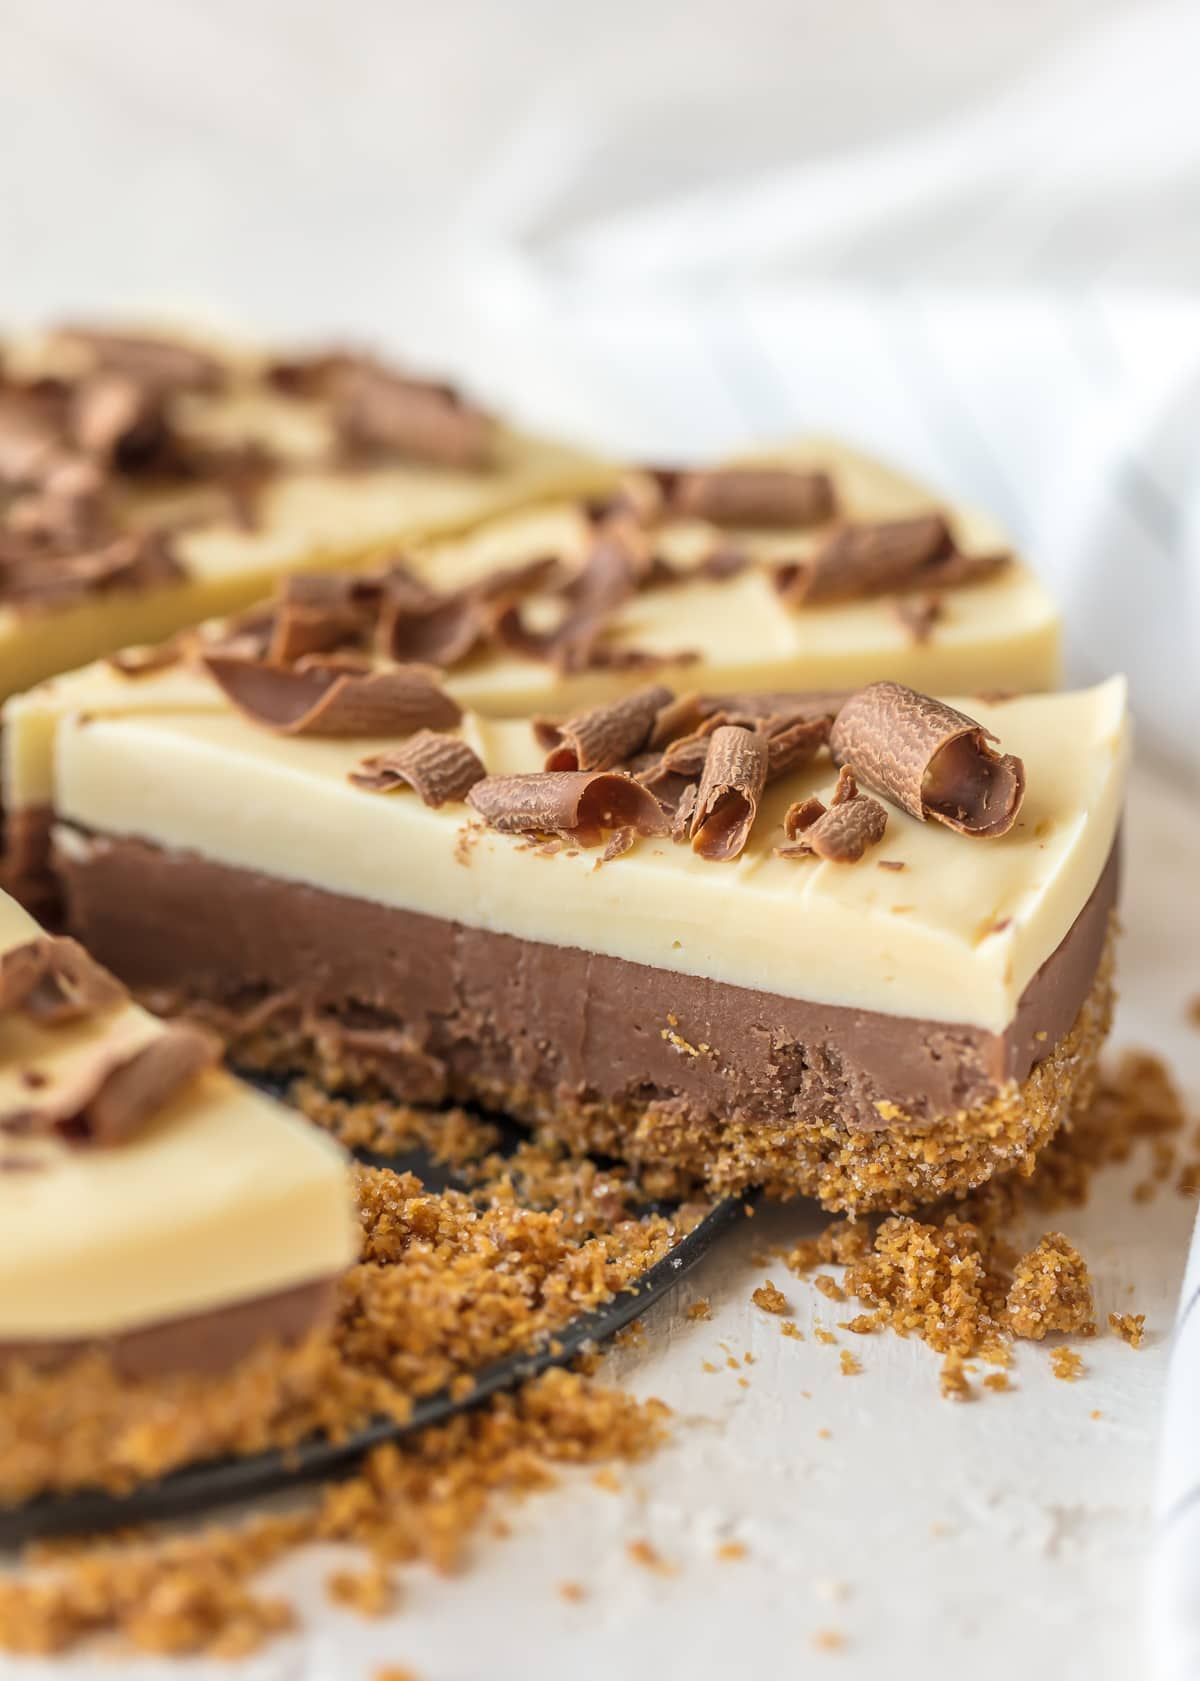 FRENCH SILK PIE FUDGE is an absolute must make for Christmas! This cute and creative fudge is delicious, easy, and fun! Wow your holiday guests with this adorable twist on a holiday classic.